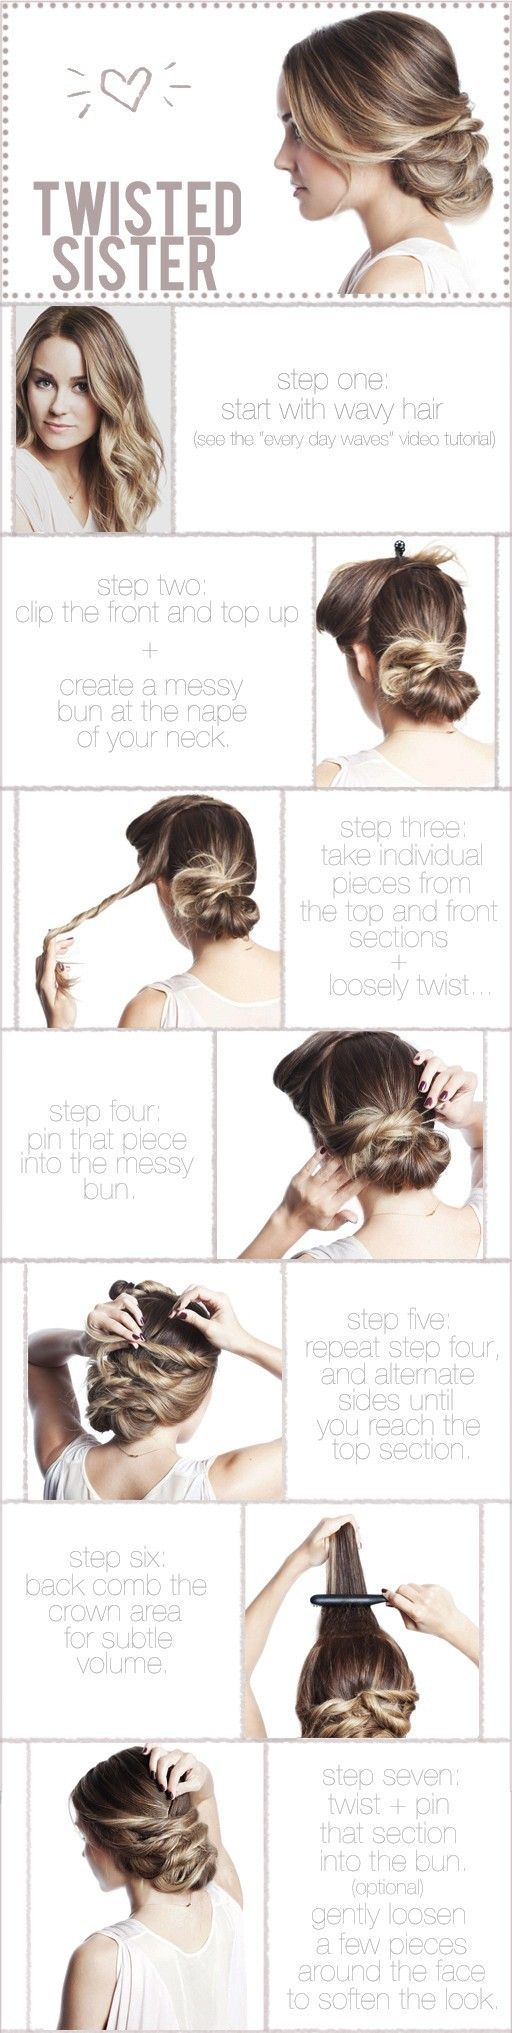 Twisted Bun: Hair Ideas, Hairstyles, Messy Bun, Make Up, Hair Styles, Hairdos, Makeup, Updos, Twisted Sister